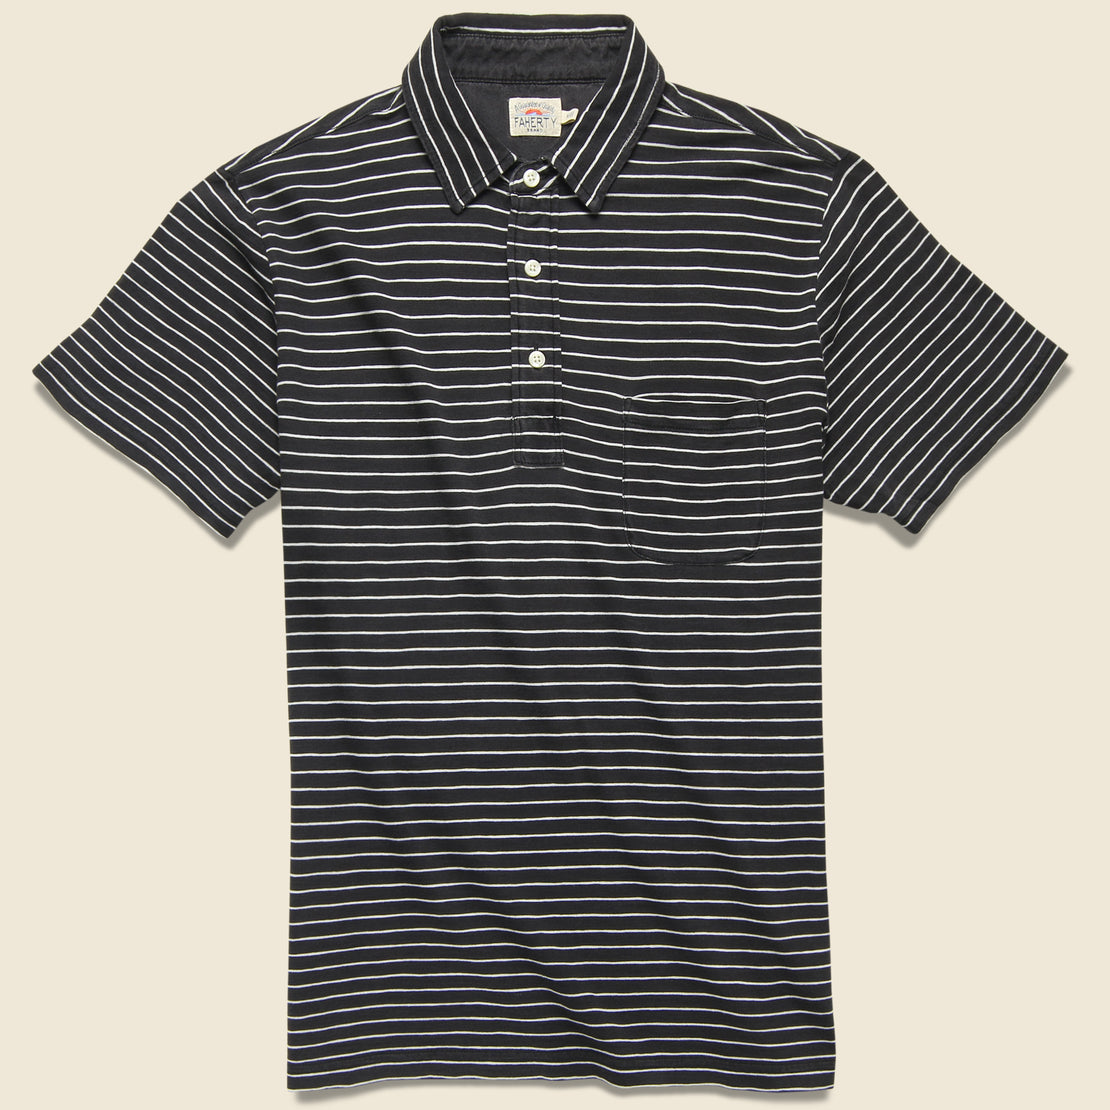 Faherty Jersey Beach Polo - Black/White